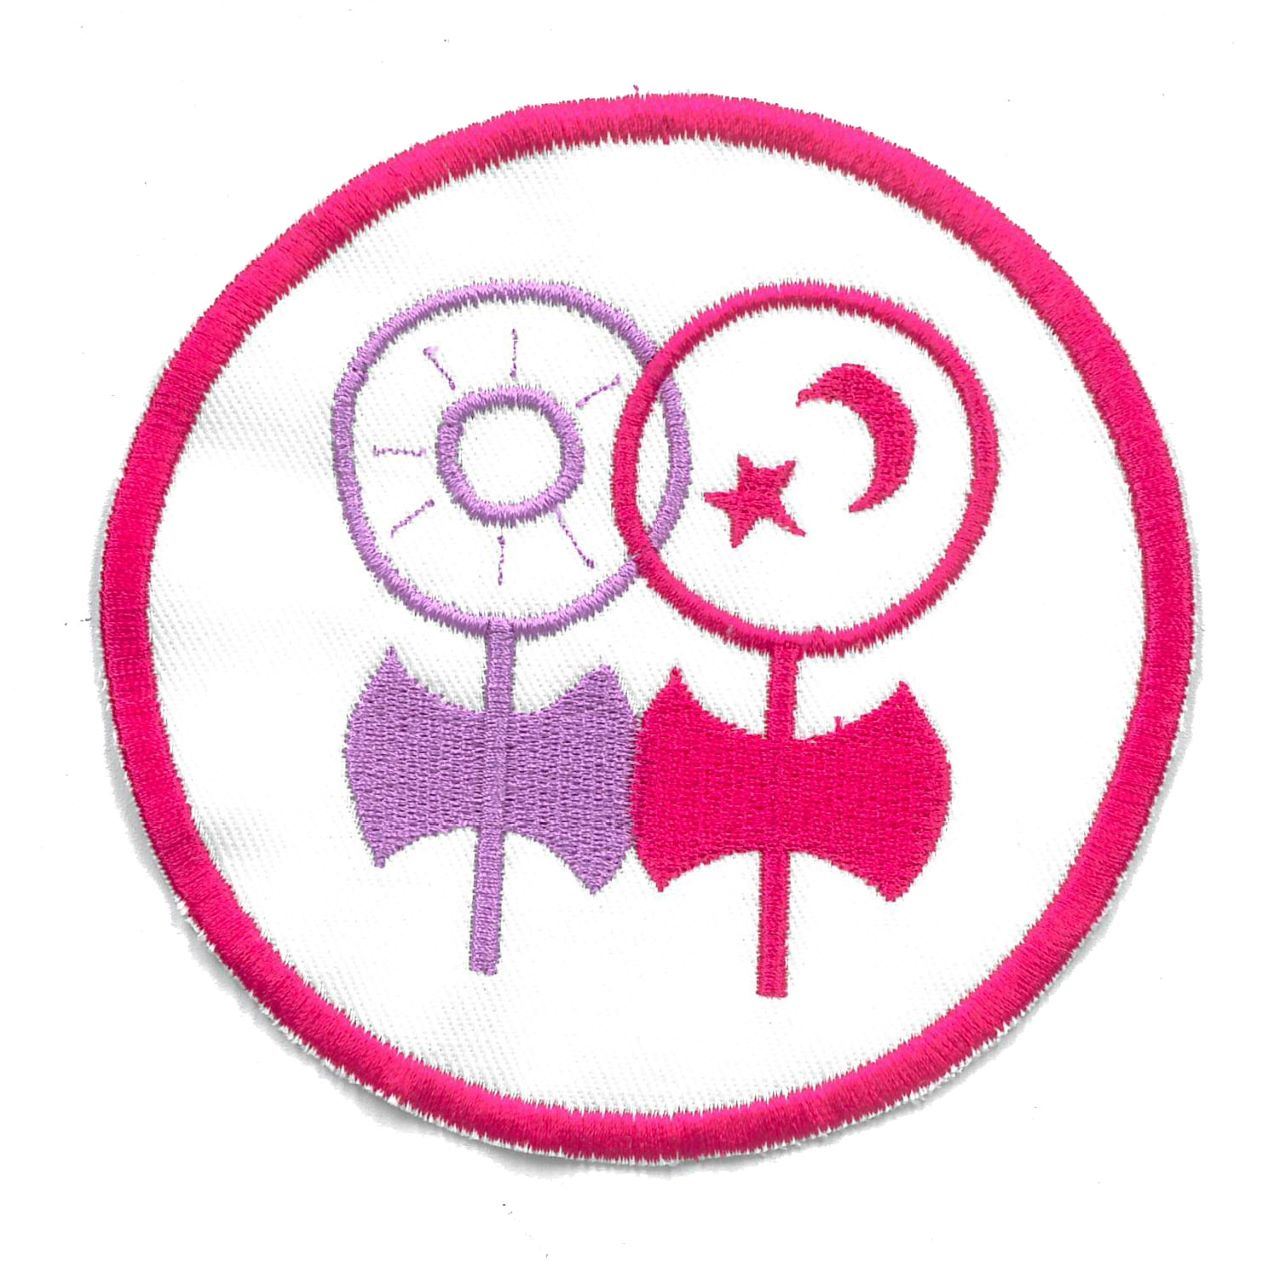 Pink and purple stitched patch showing two women symbols adapted to include the labrys (double-headed axes).